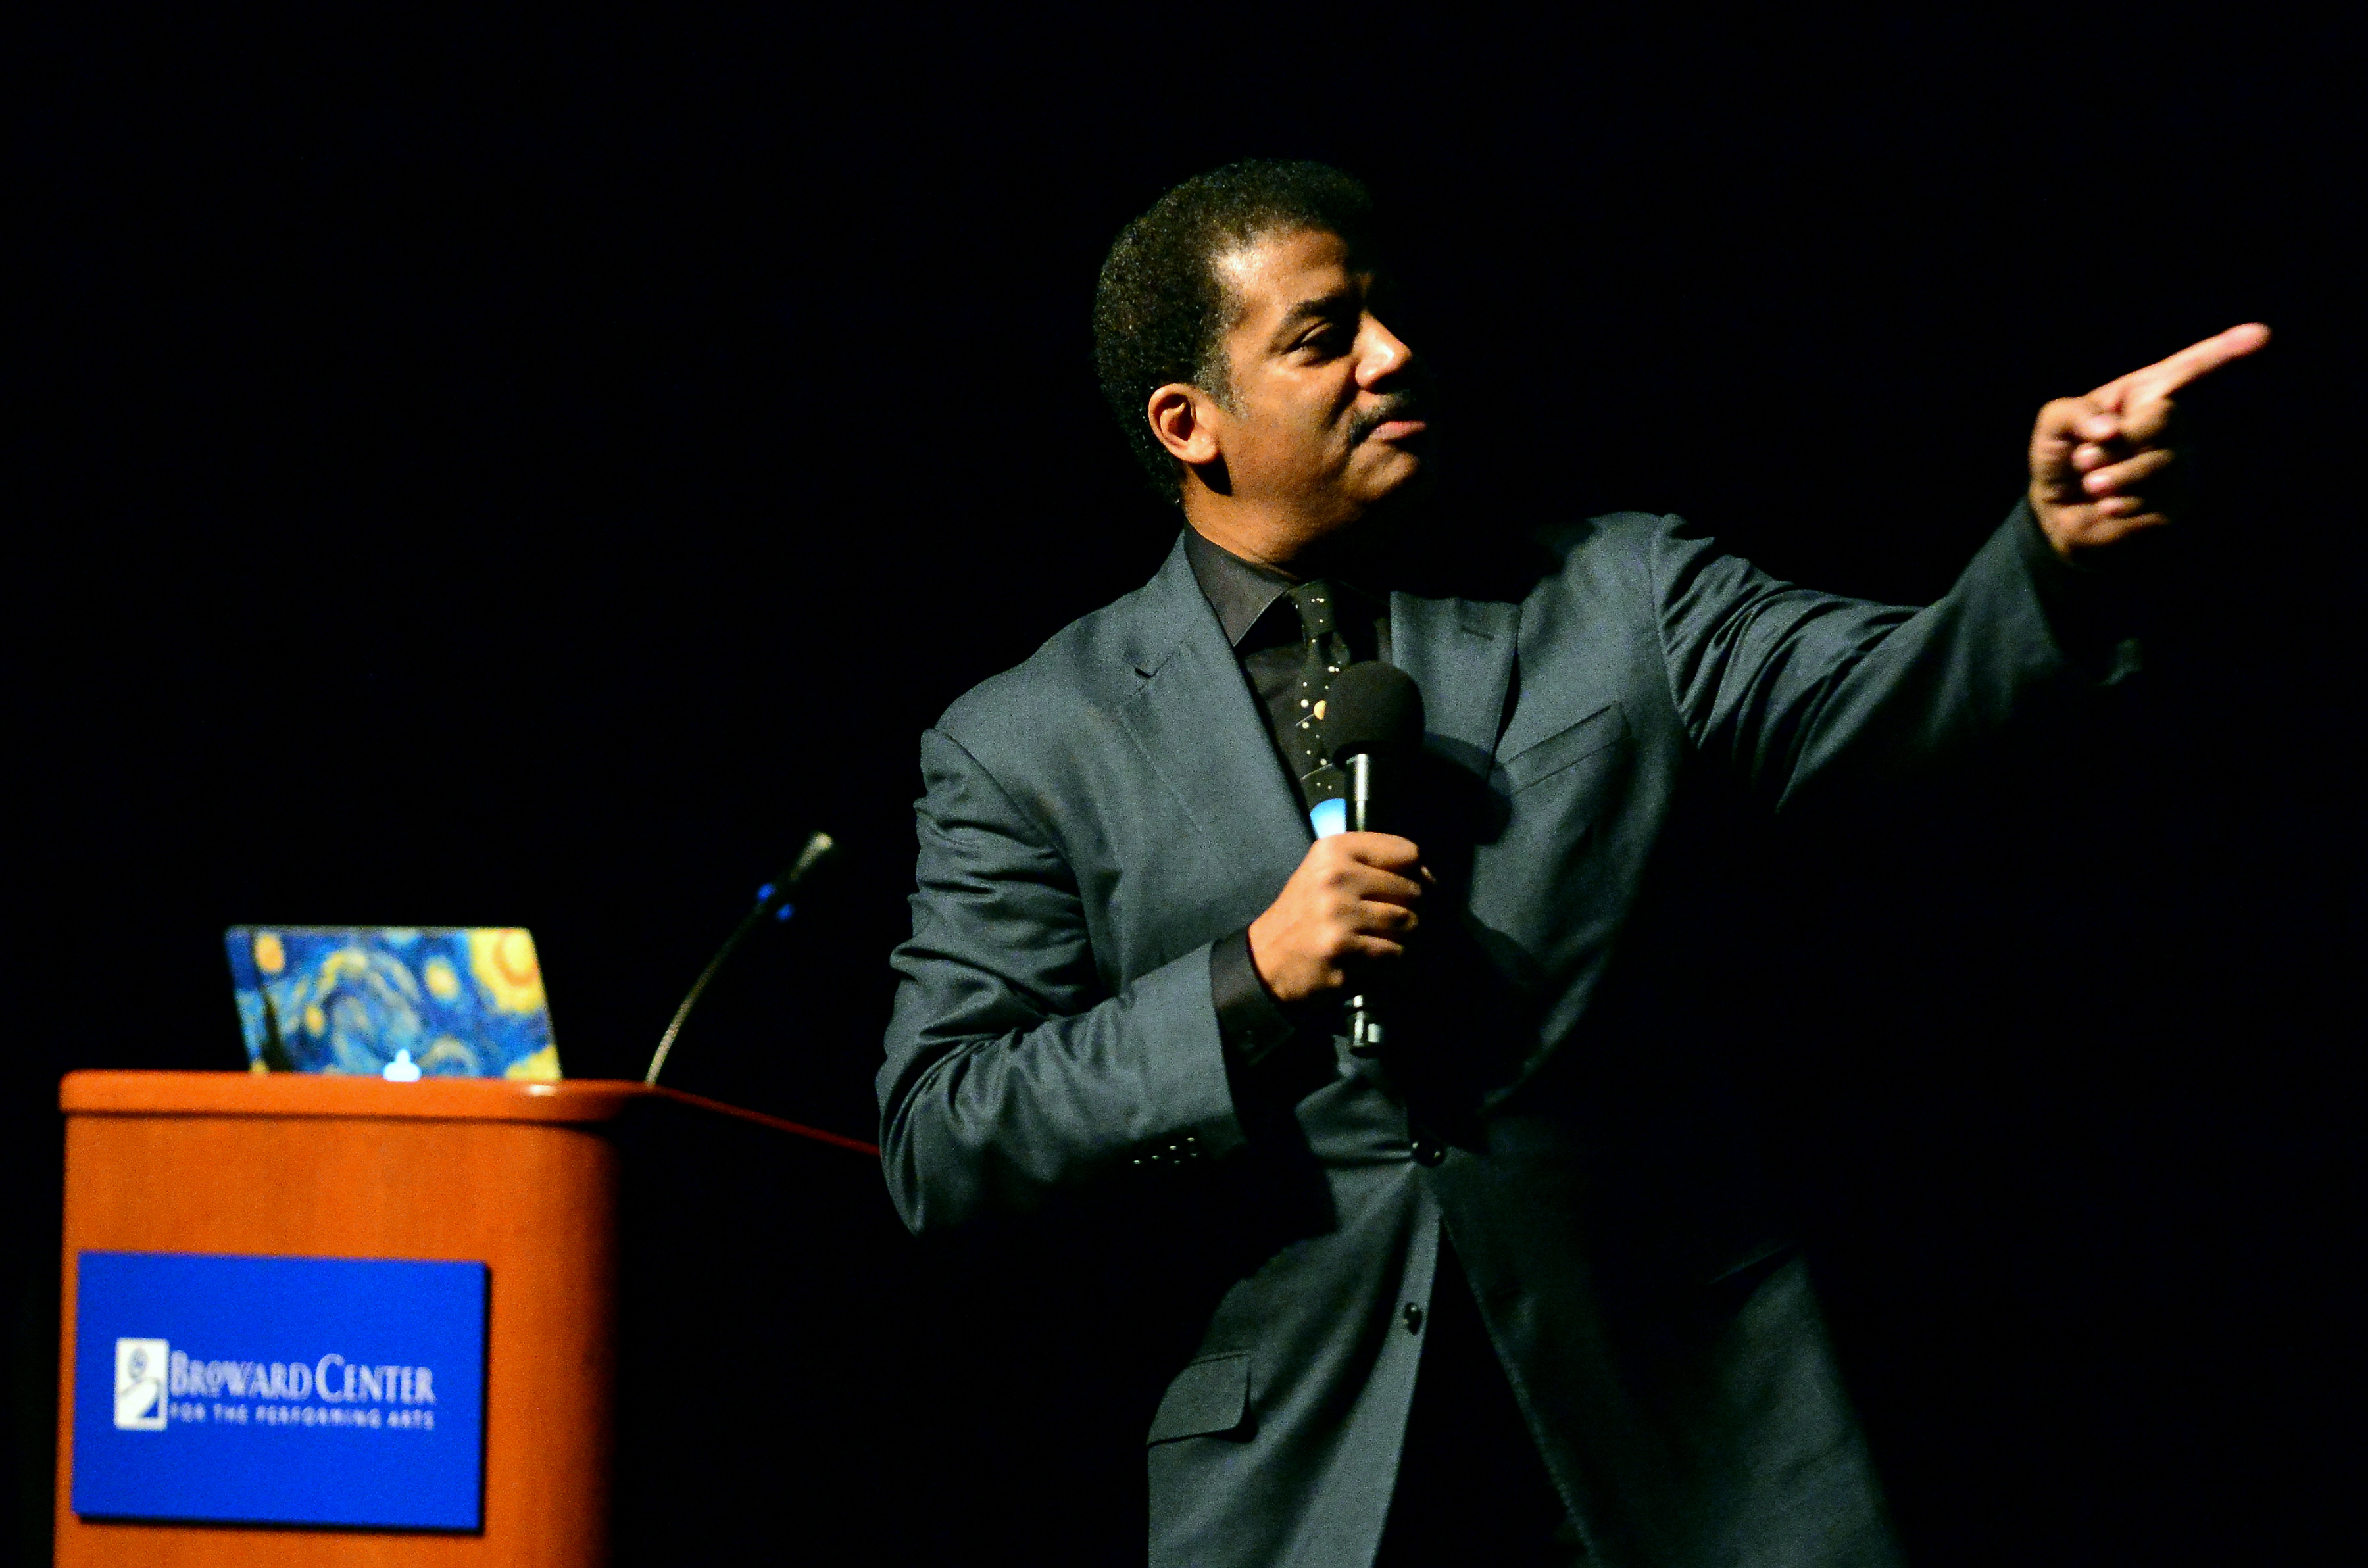 Pointing the way: Tyson at a 2016 talk in Ft. Lauderdale